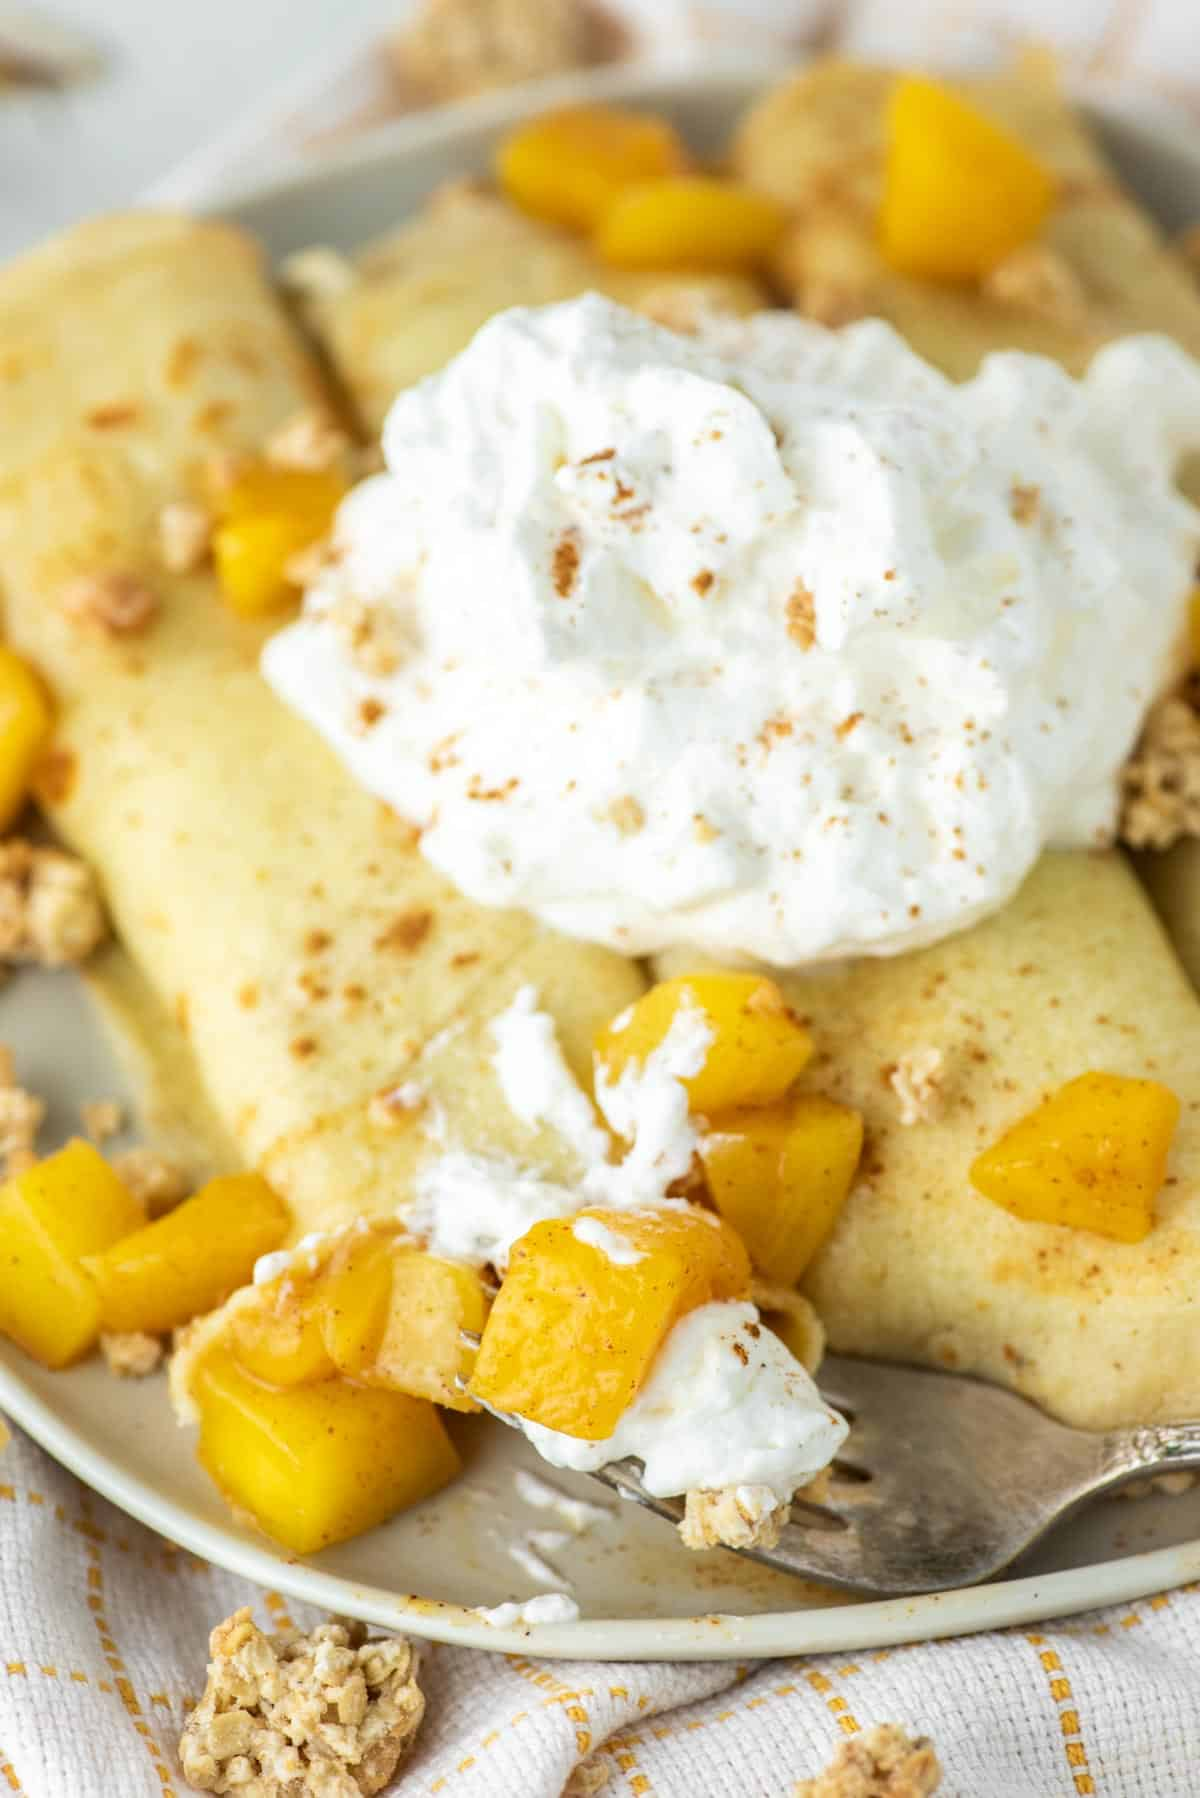 fork taking bite of crepes with mango inside